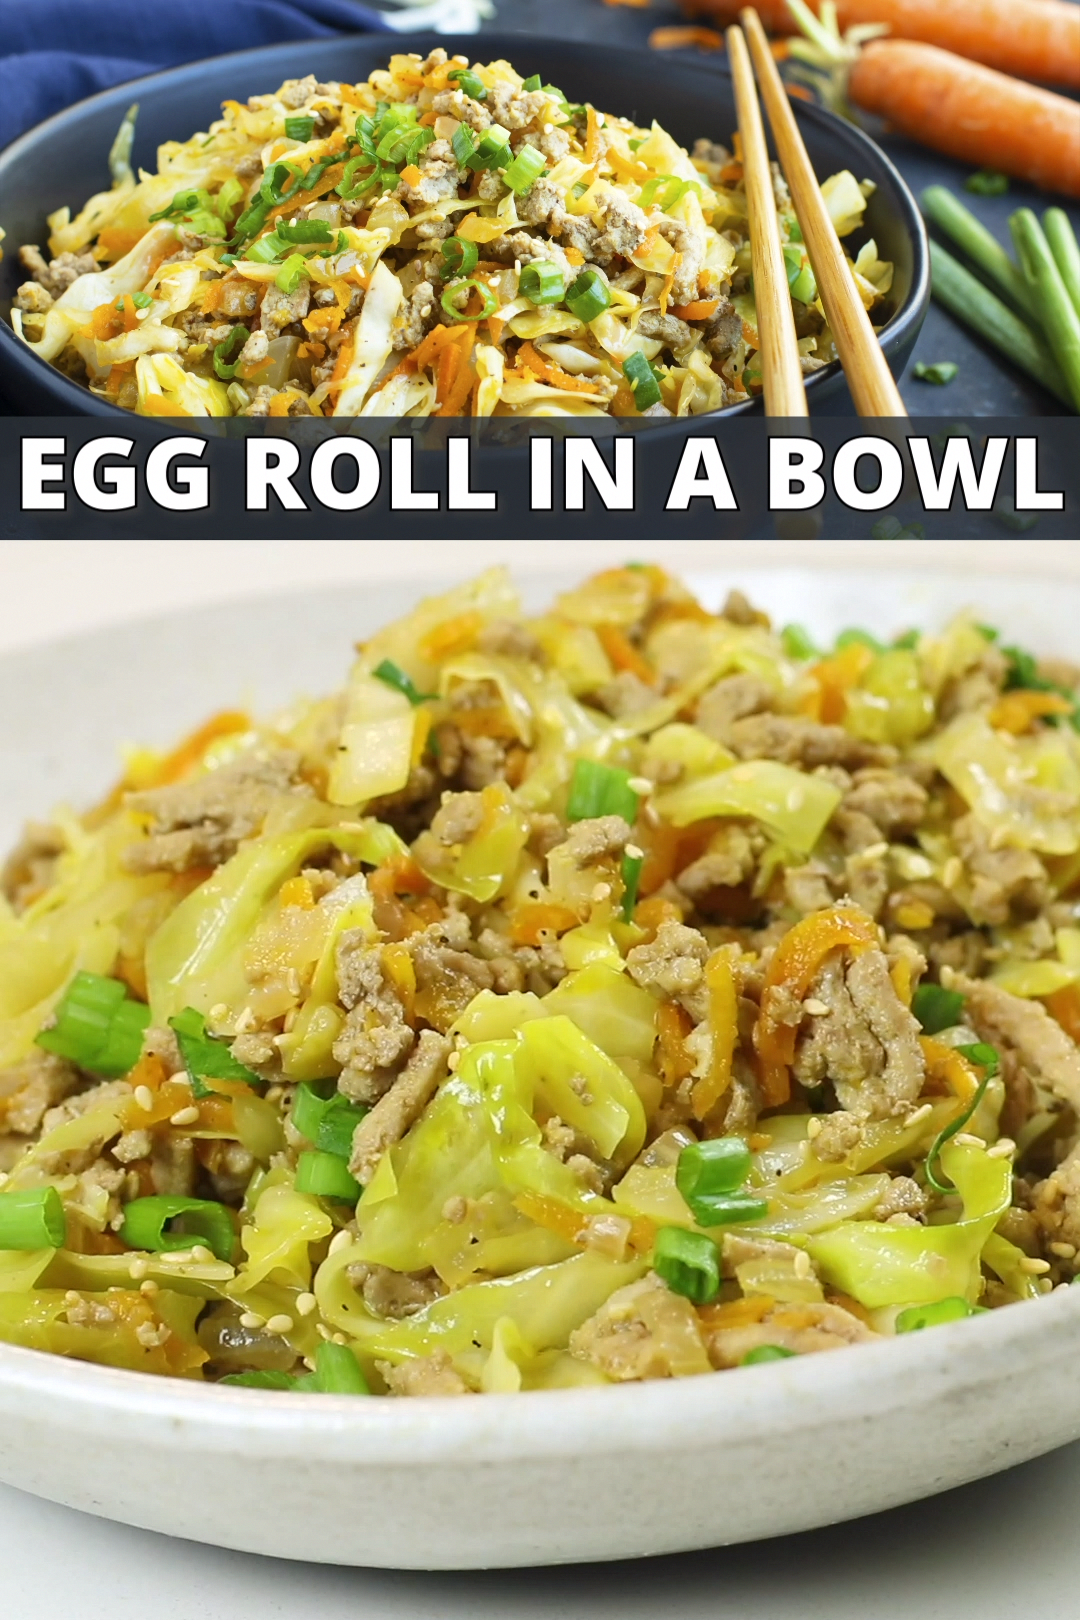 Egg Roll in a Bowl Recipe (Low-Carb, Keto, & Whole